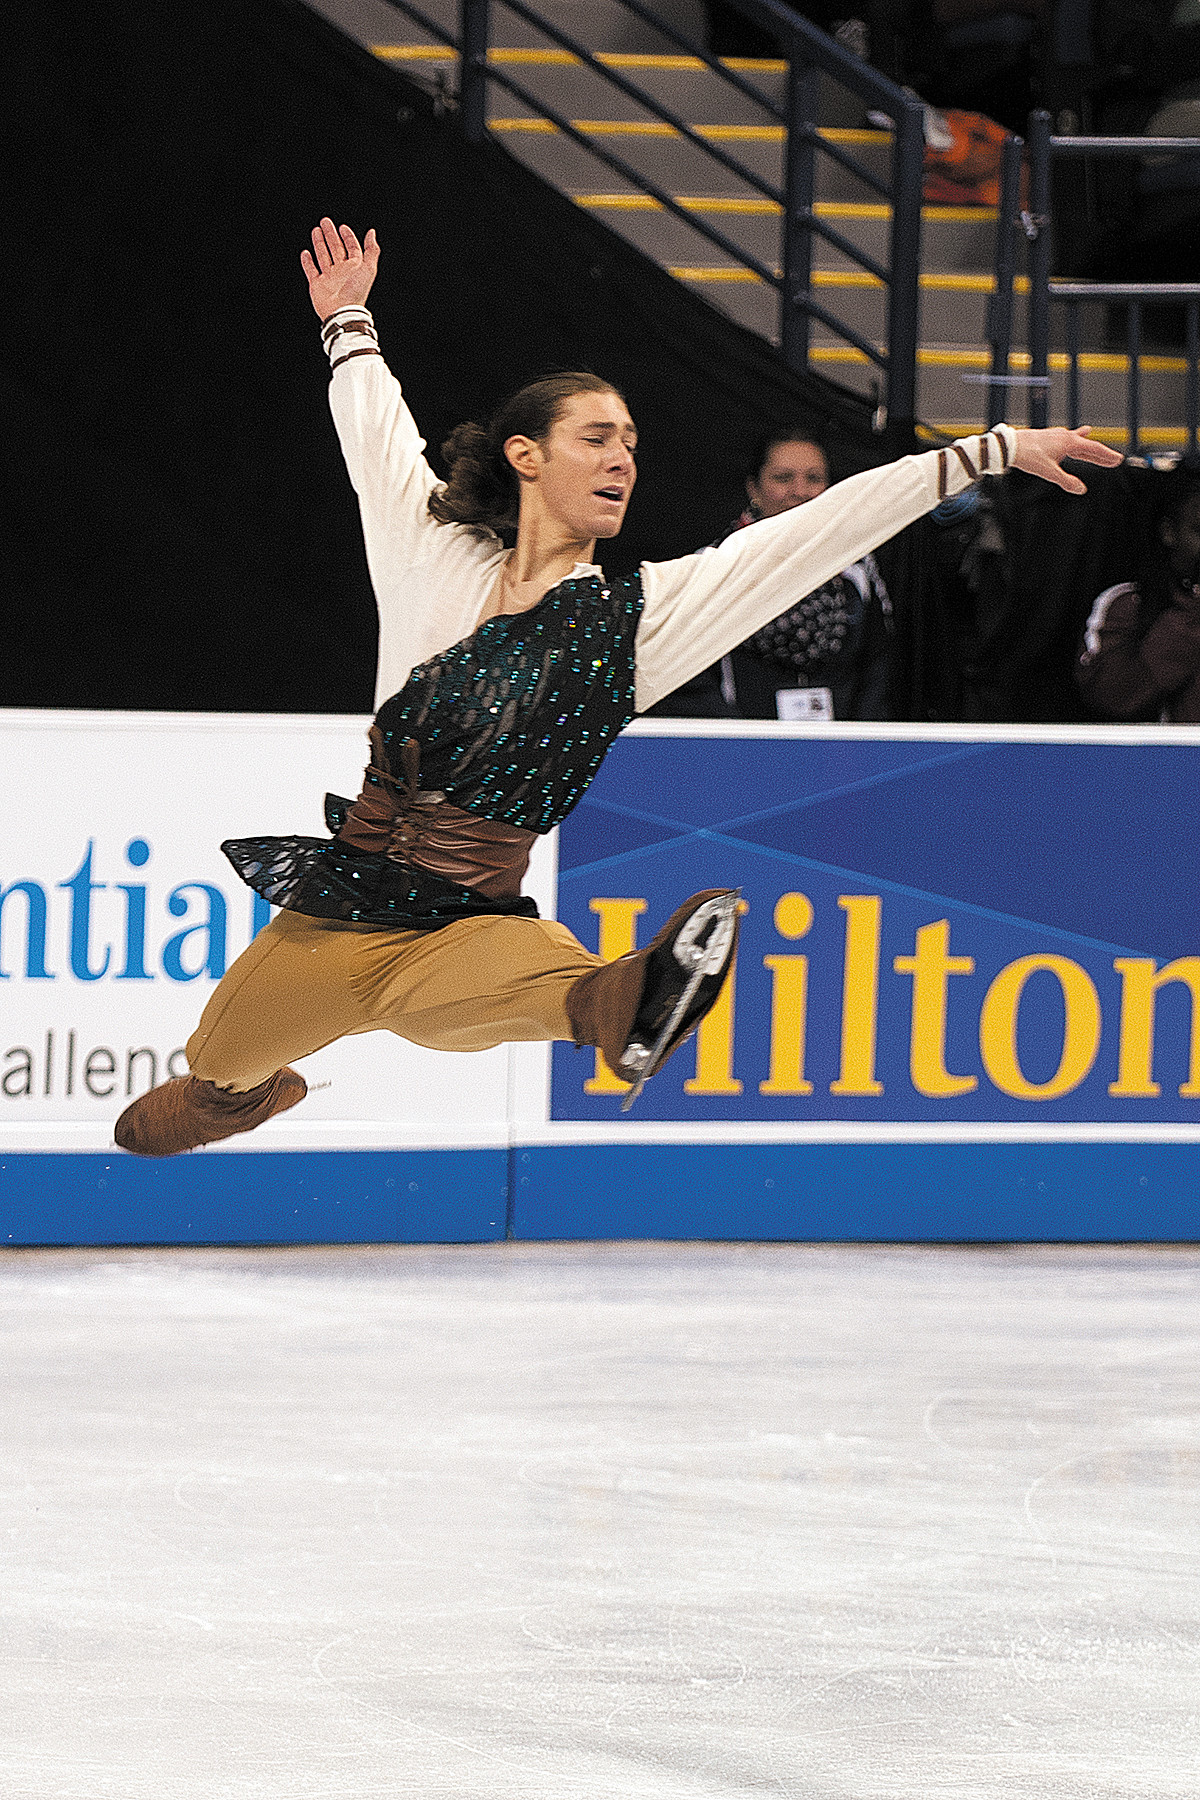 Brown finishes fourth at Worlds